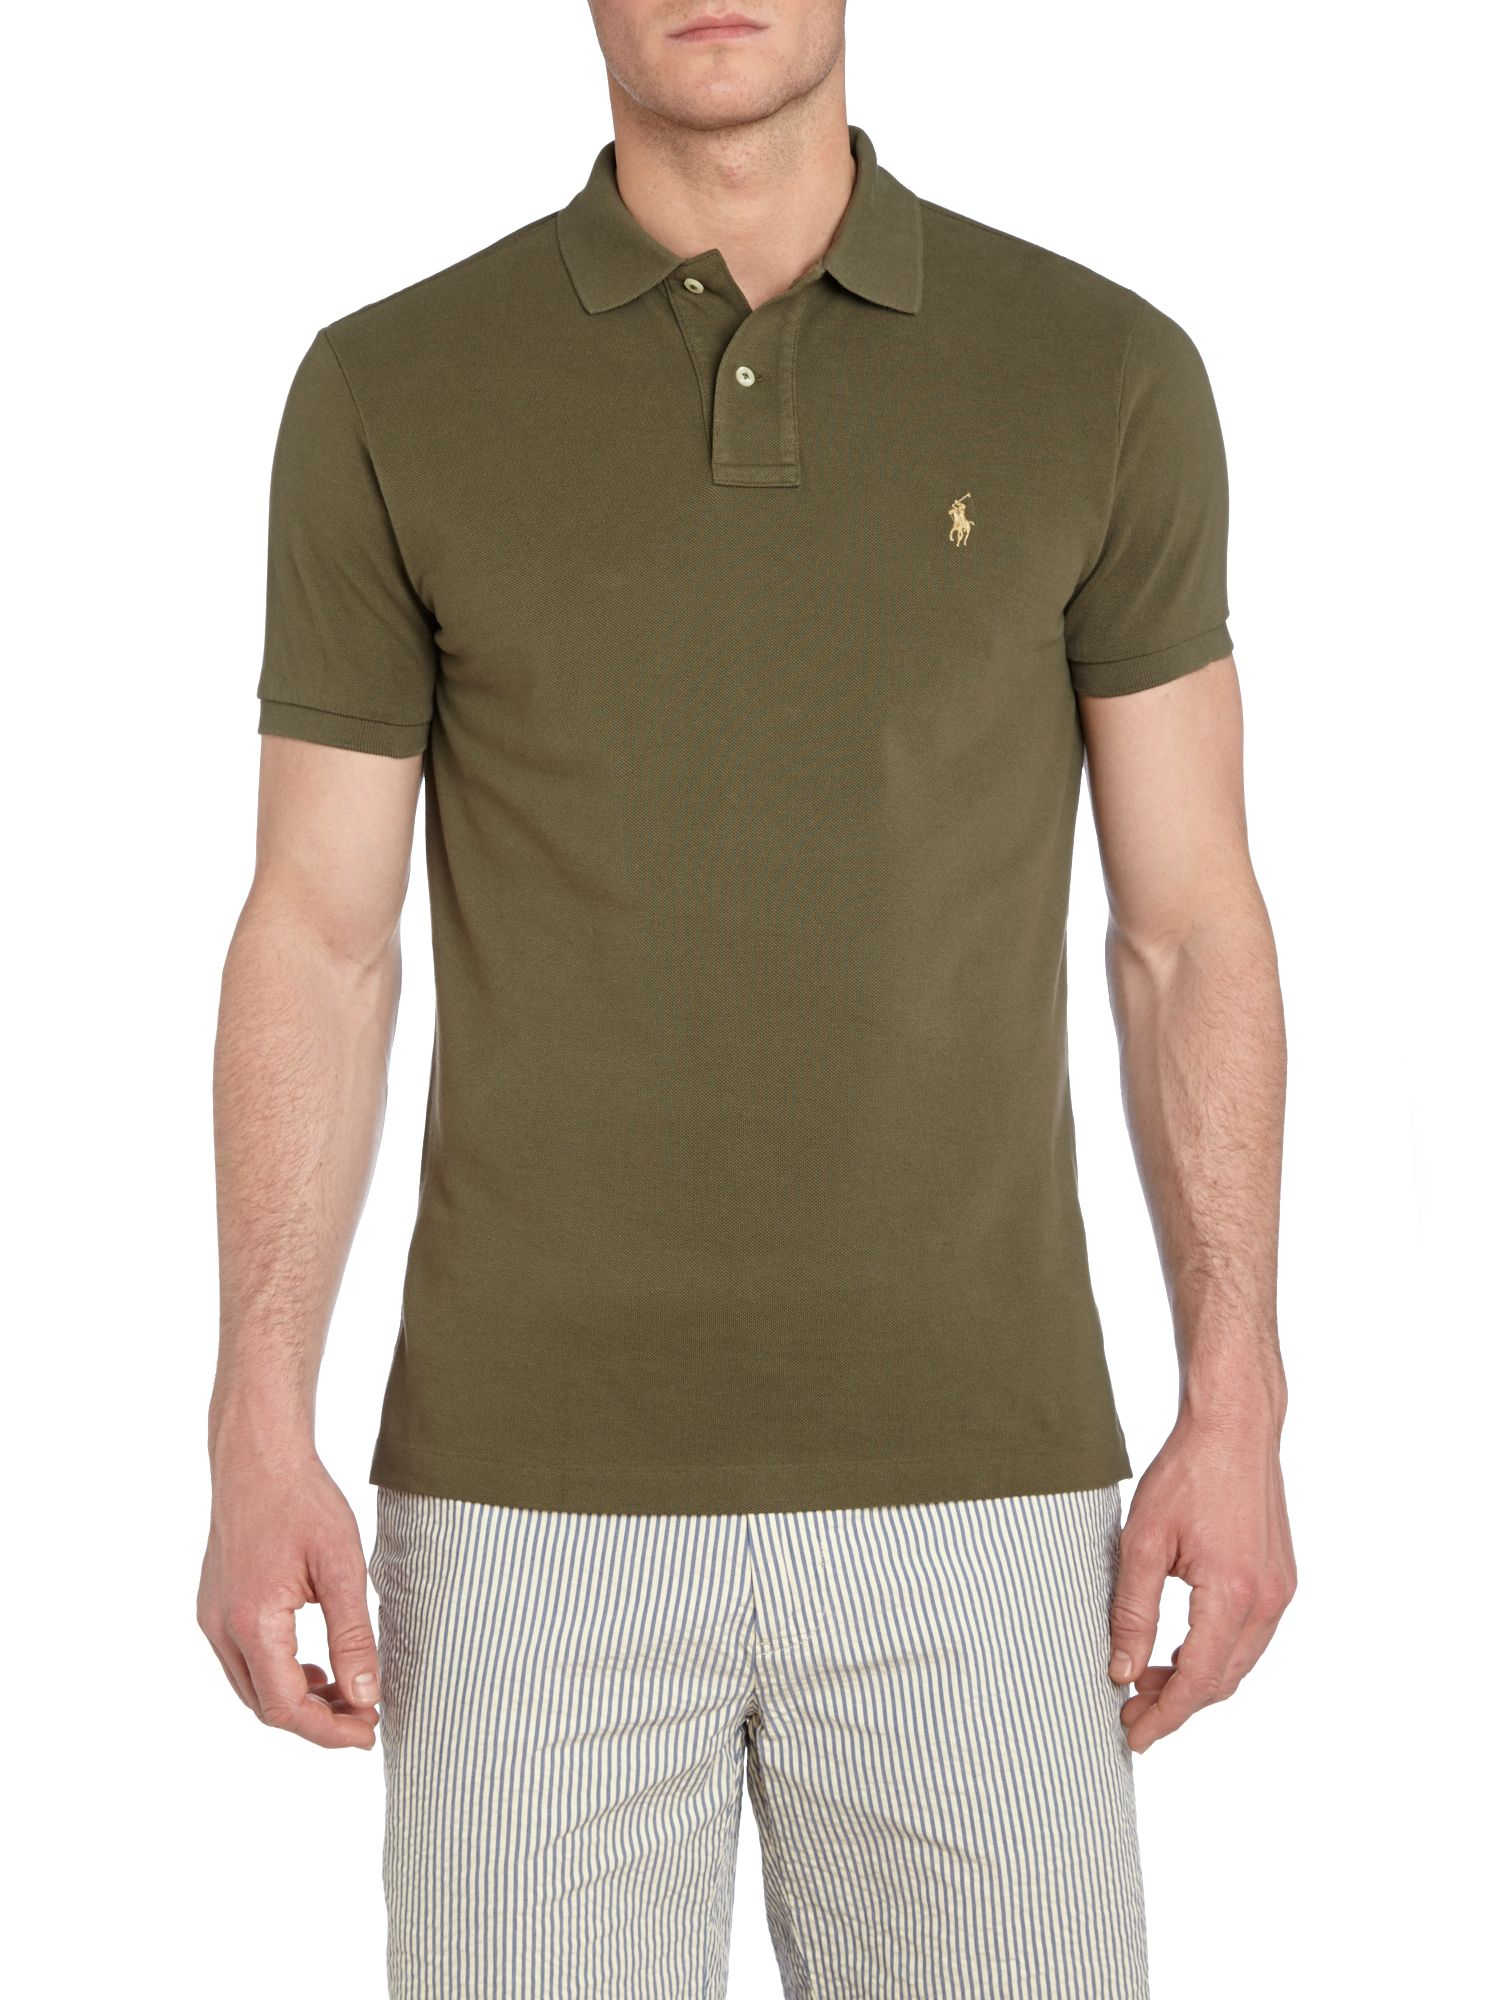 polo ralph lauren custom fit mesh polo shirt in green for